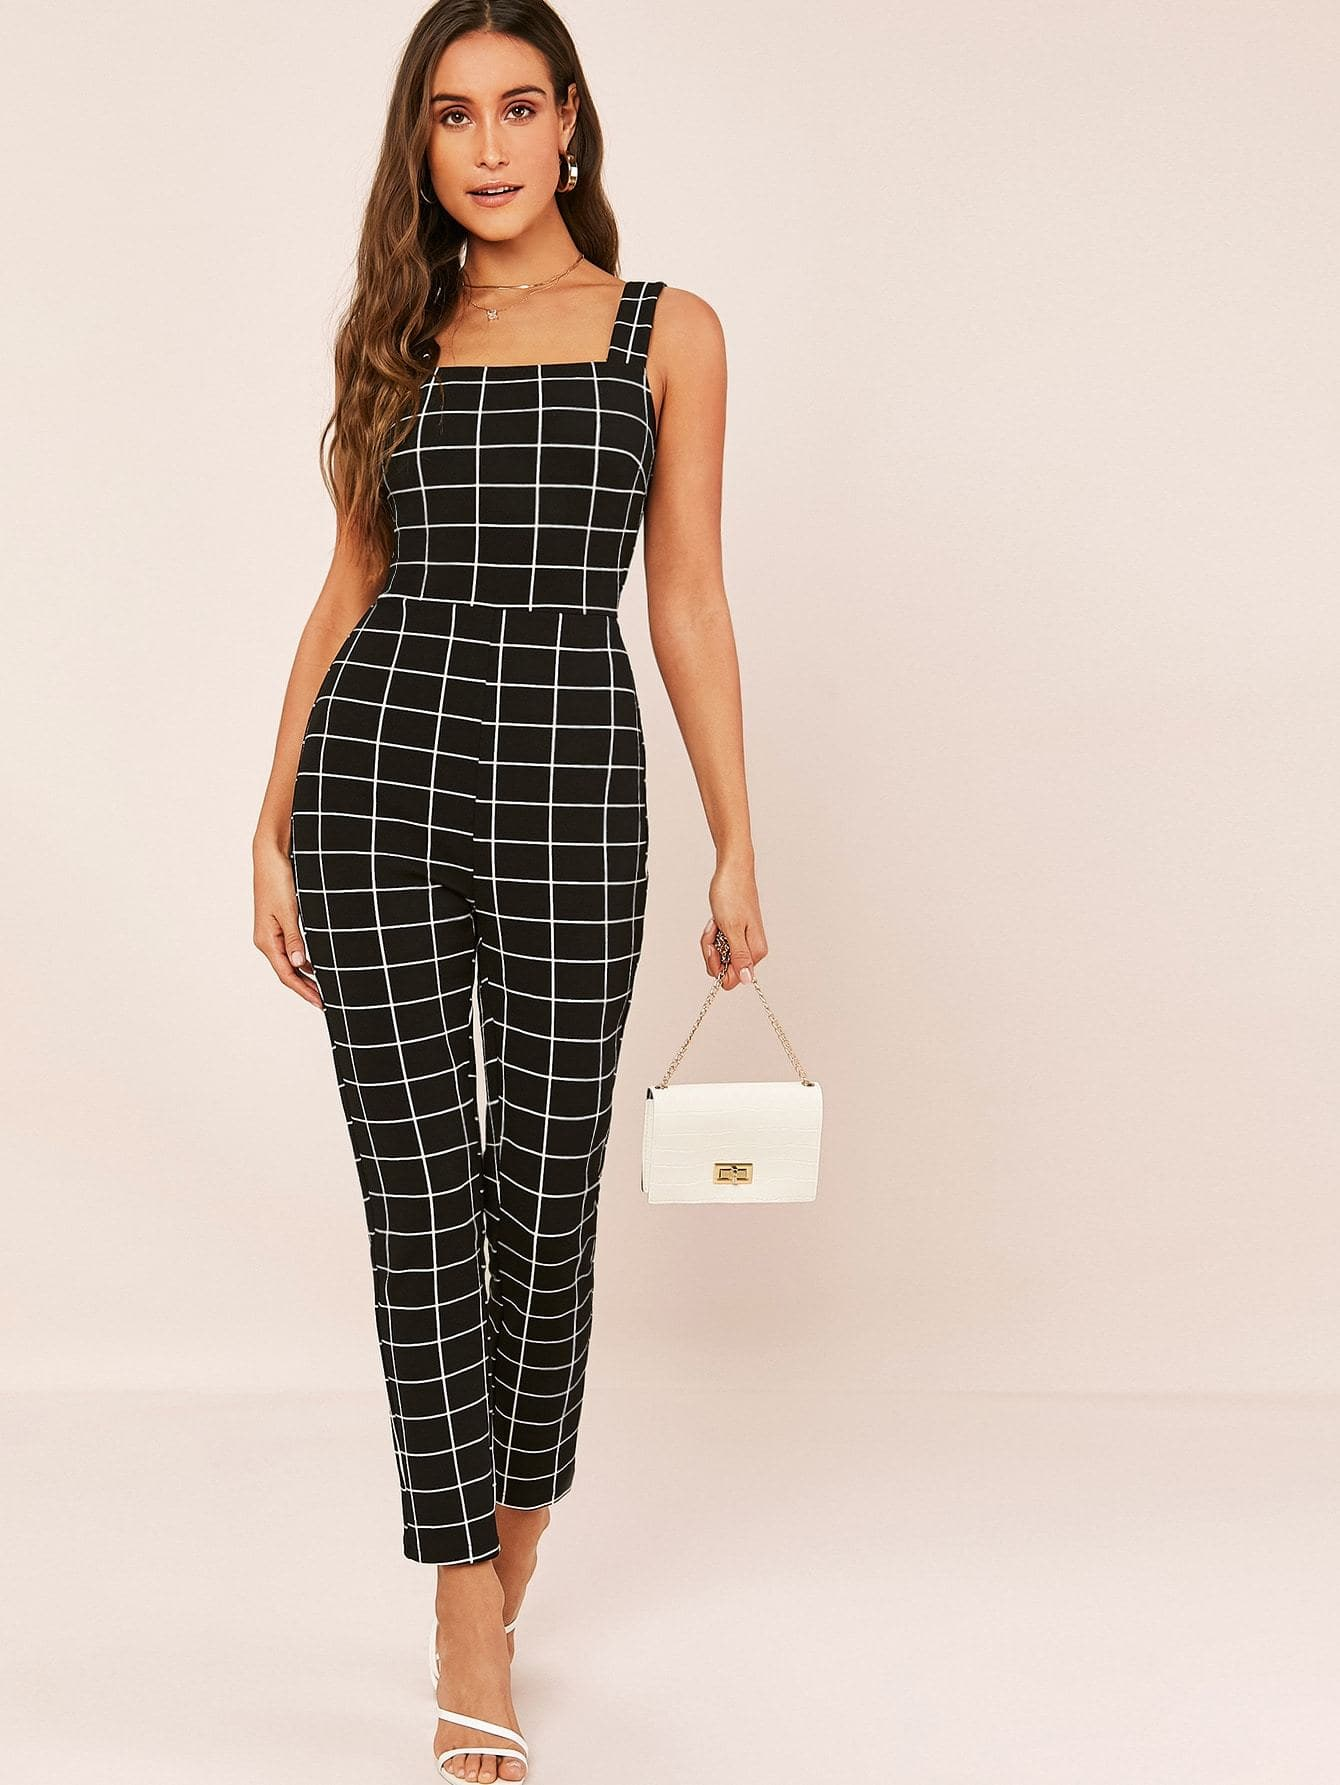 Square Neck Grid Tank Jumpsuit - FLJ CORPORATIONS